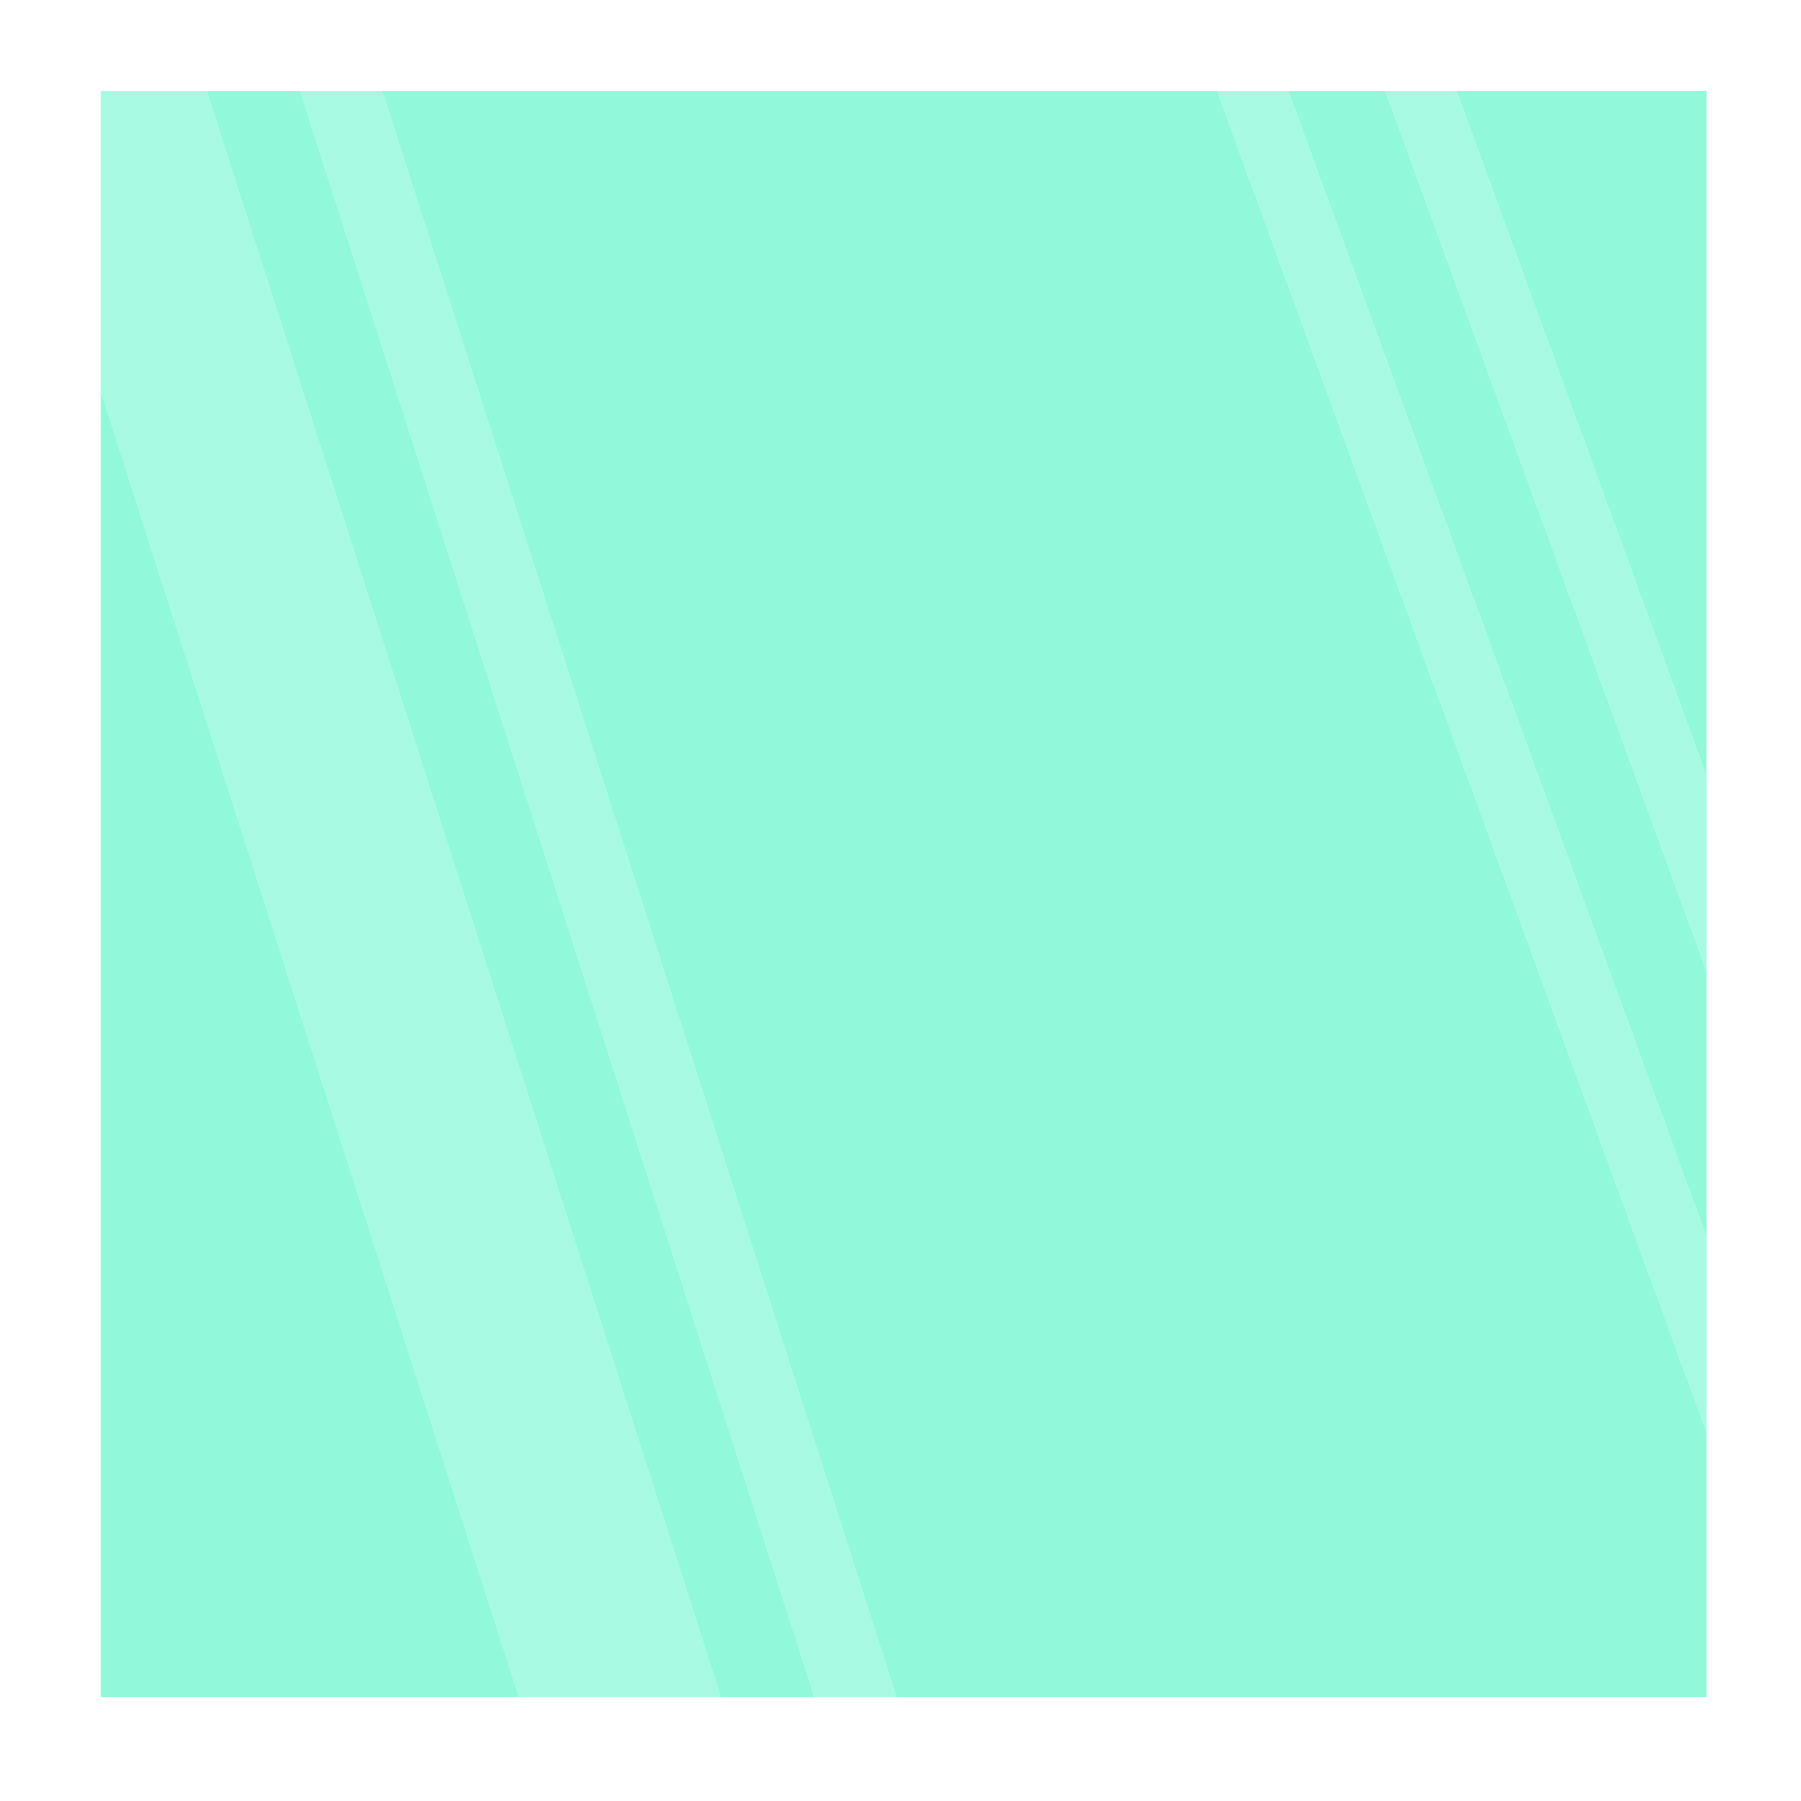 Aqua 8x8 Glowing Glass Tile Image